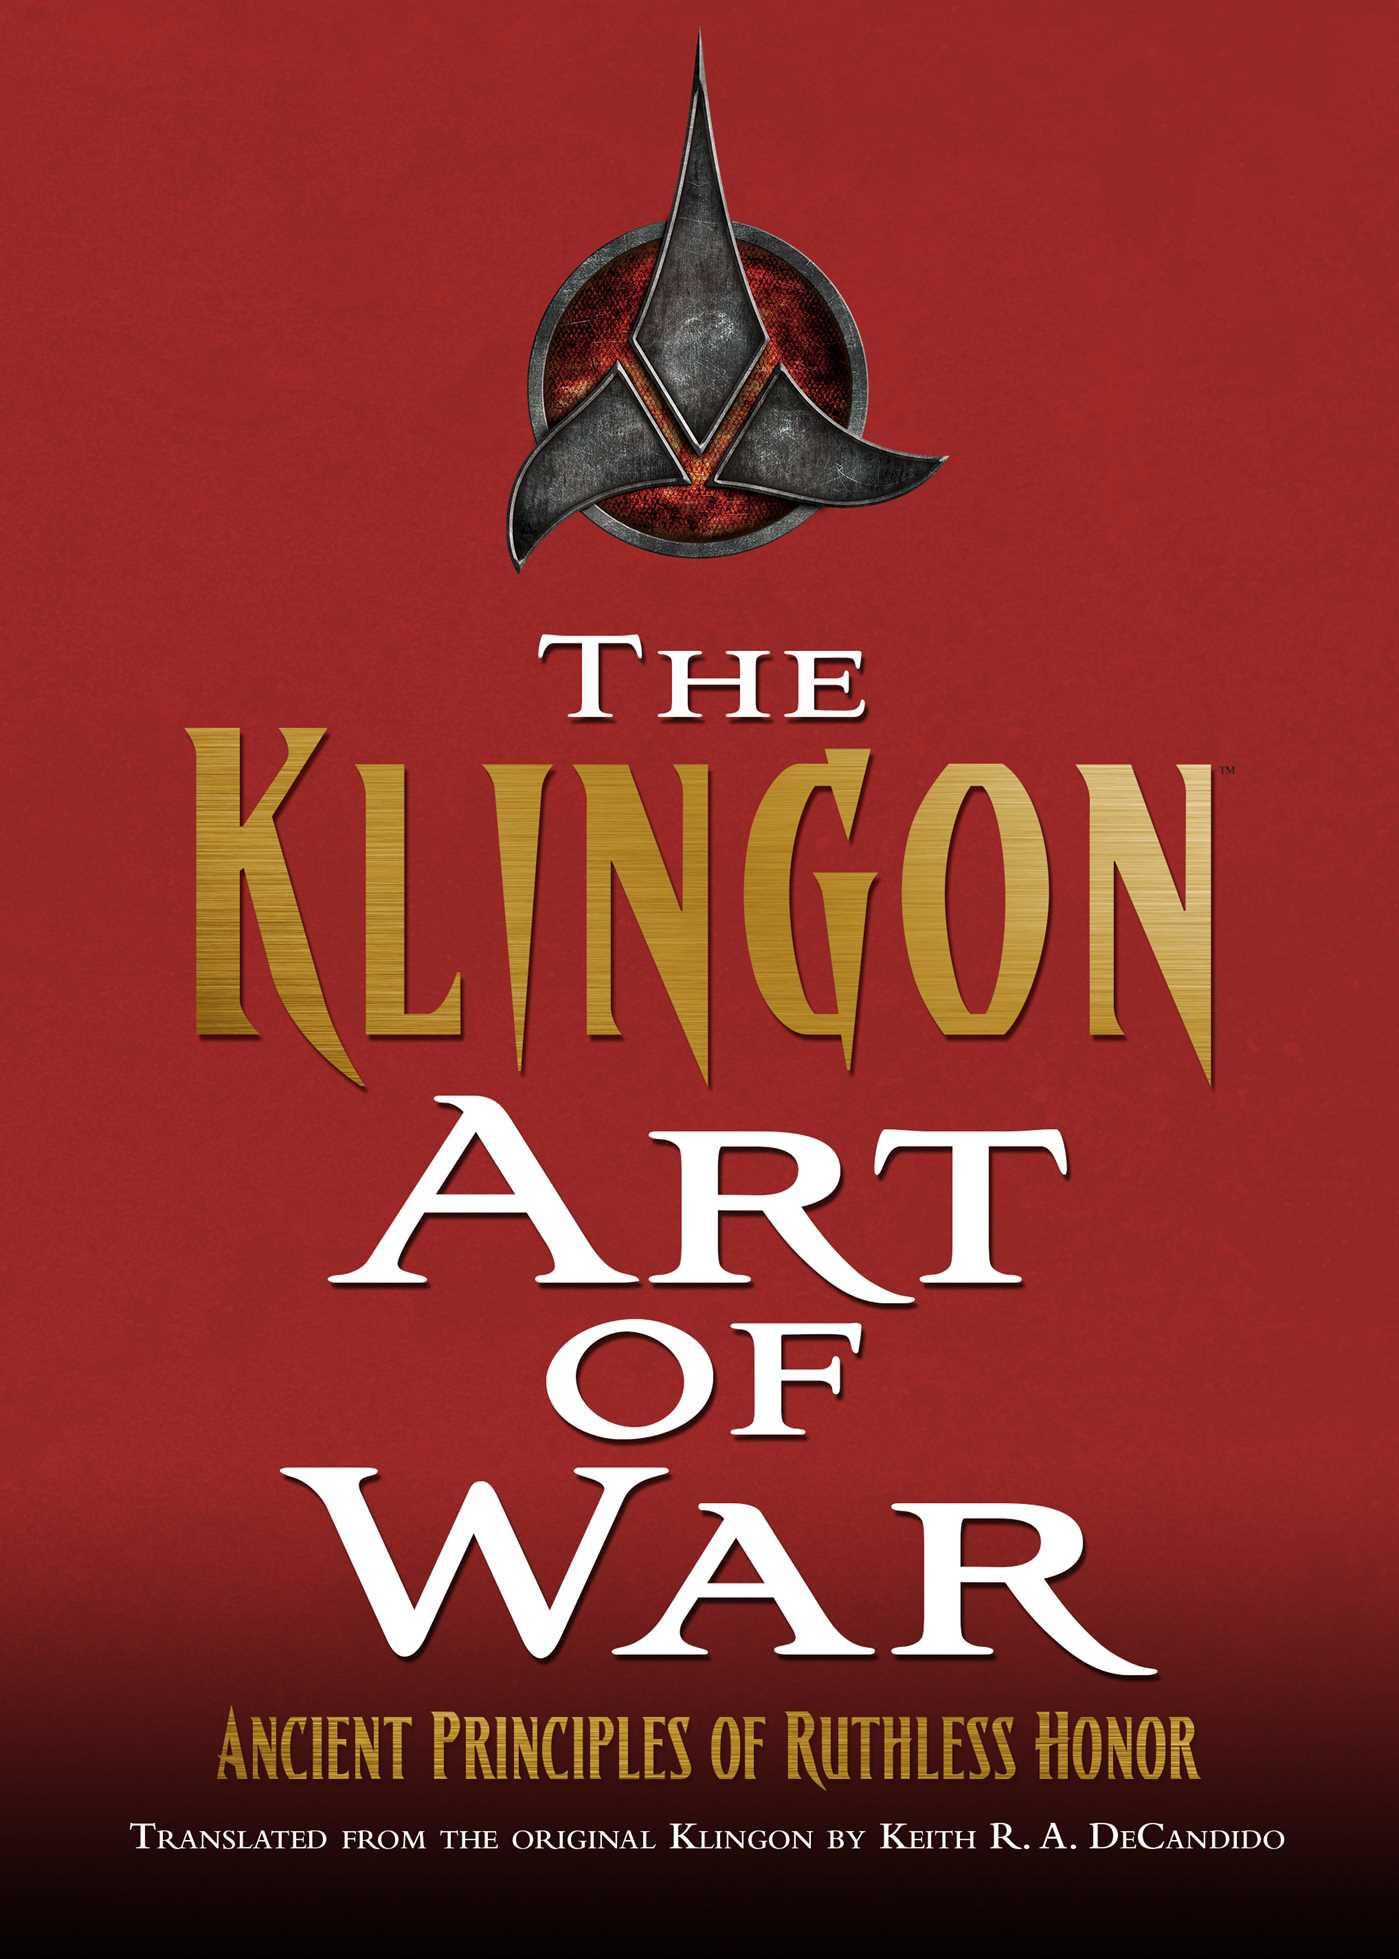 The klingon art of war 9781476757407 hr